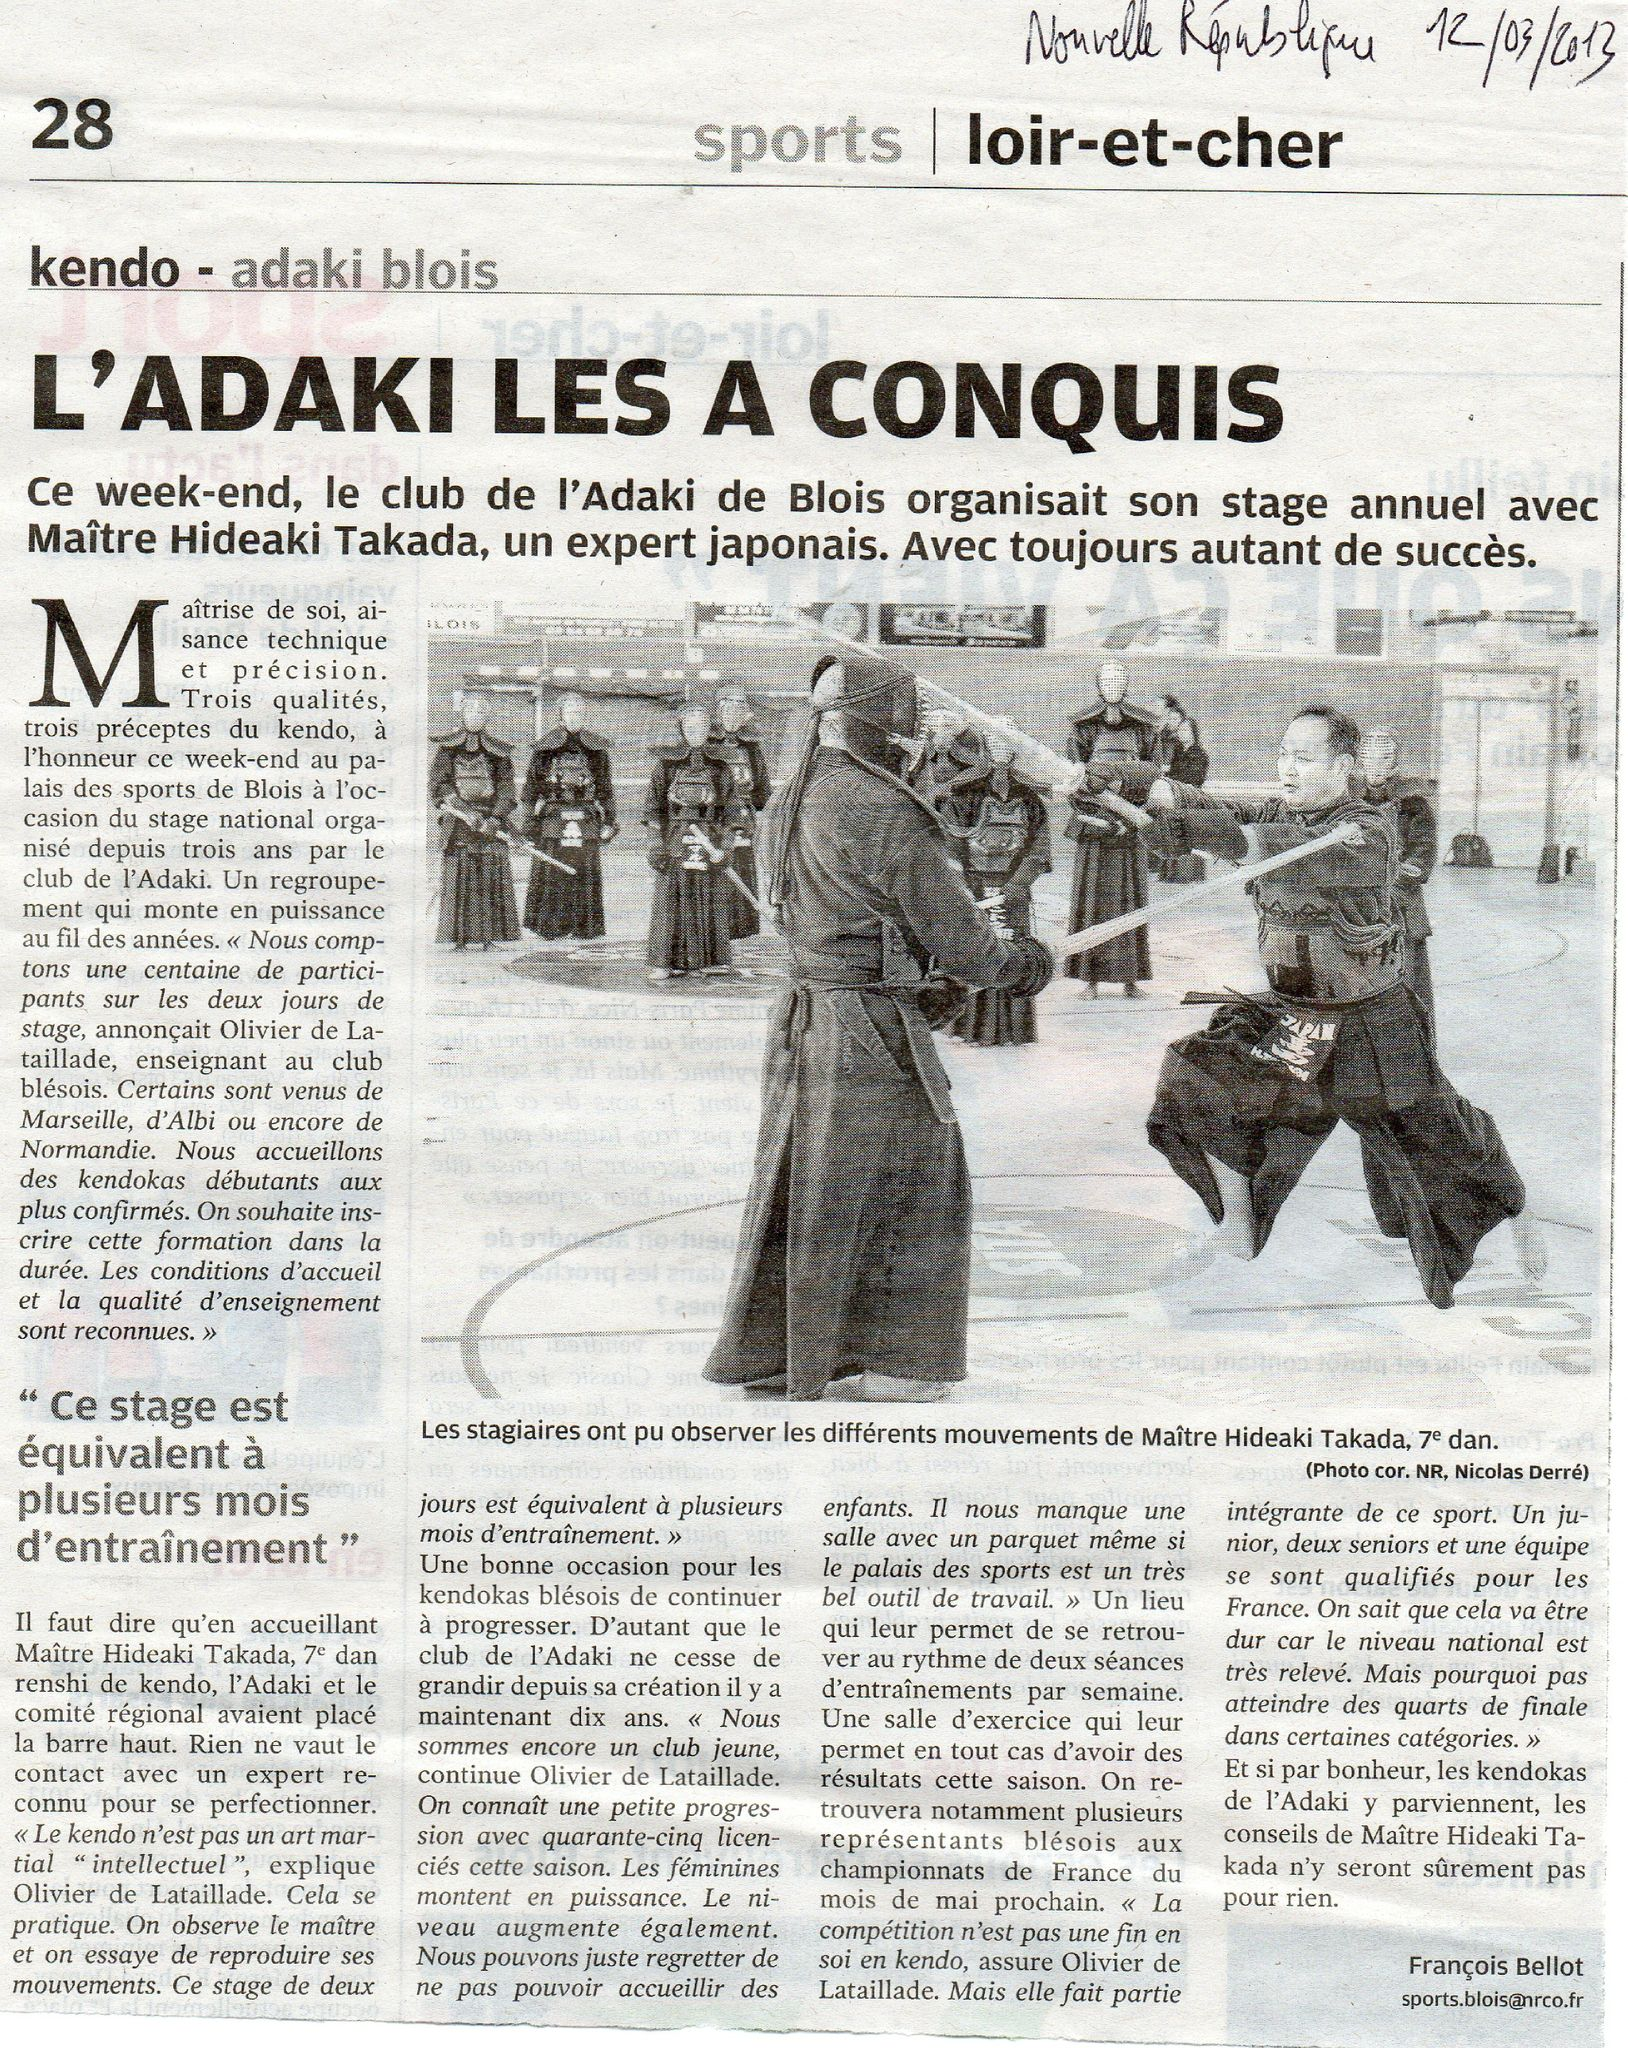 NR-article 12 03 2013